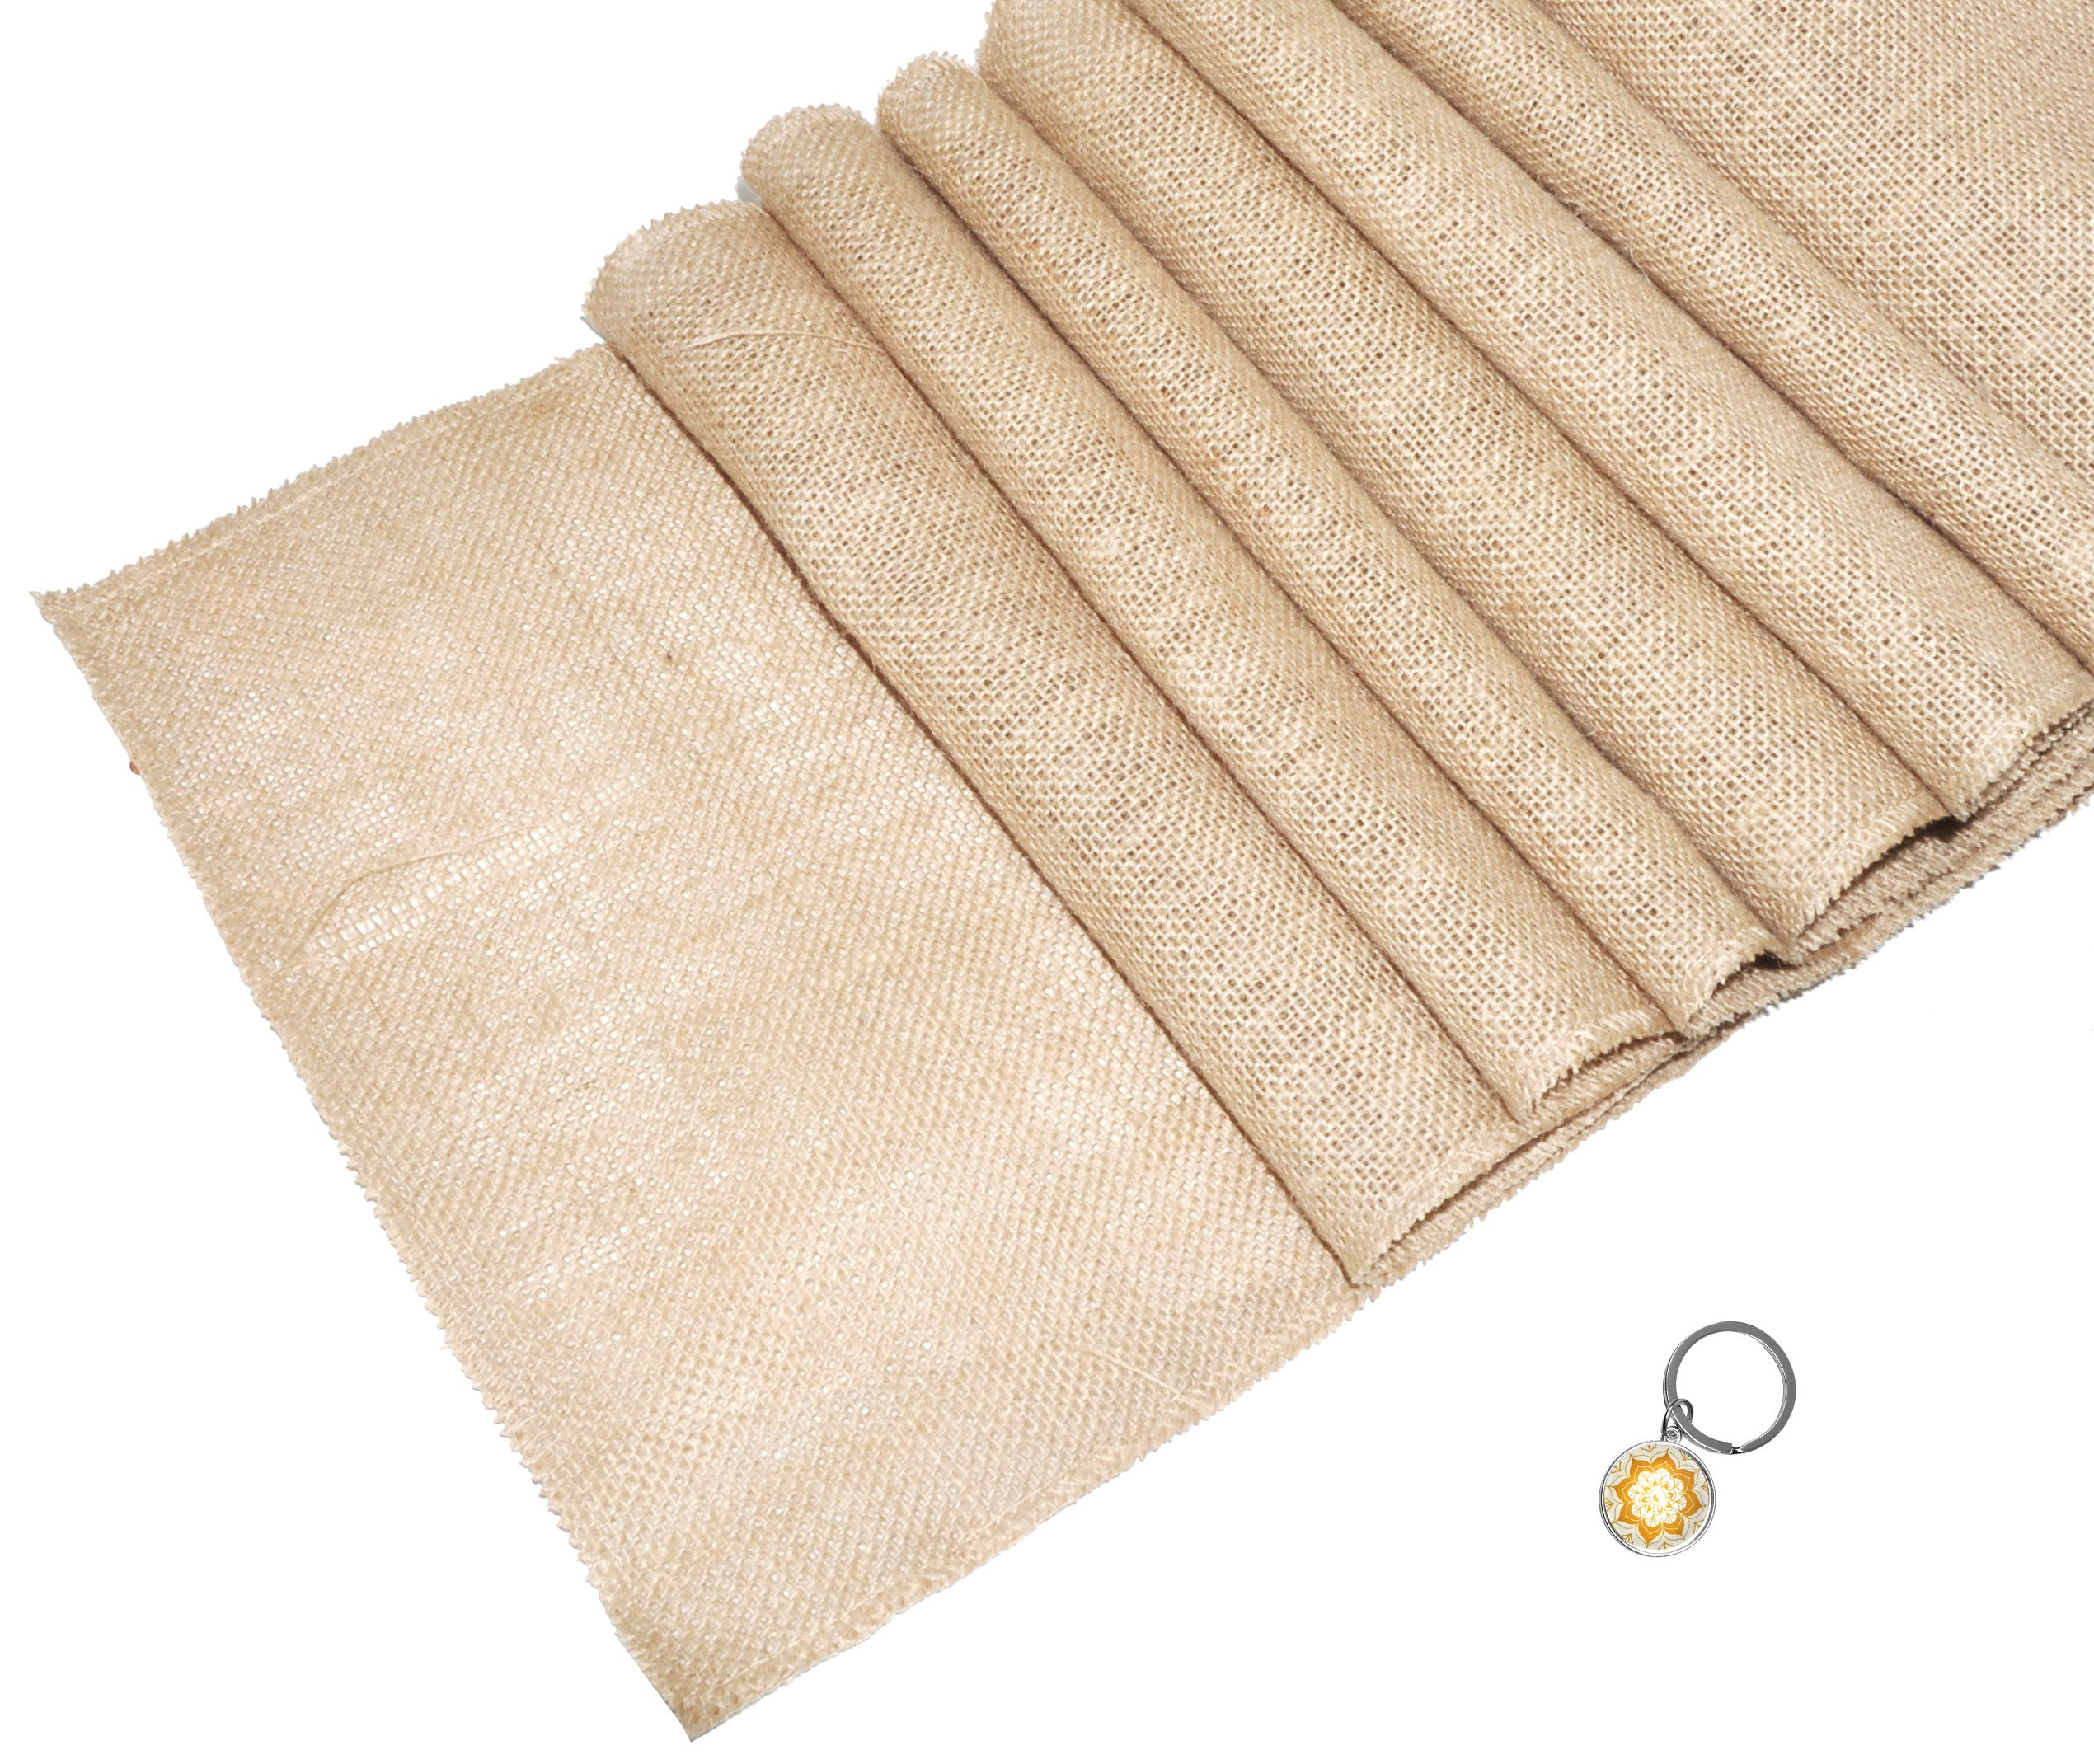 Mandala Crafts Jute Burlap Table Runner Roll for Wedding, Party, Farmhouse, Rustic Baby Shower, Country Decoration Plain, 5 Packs